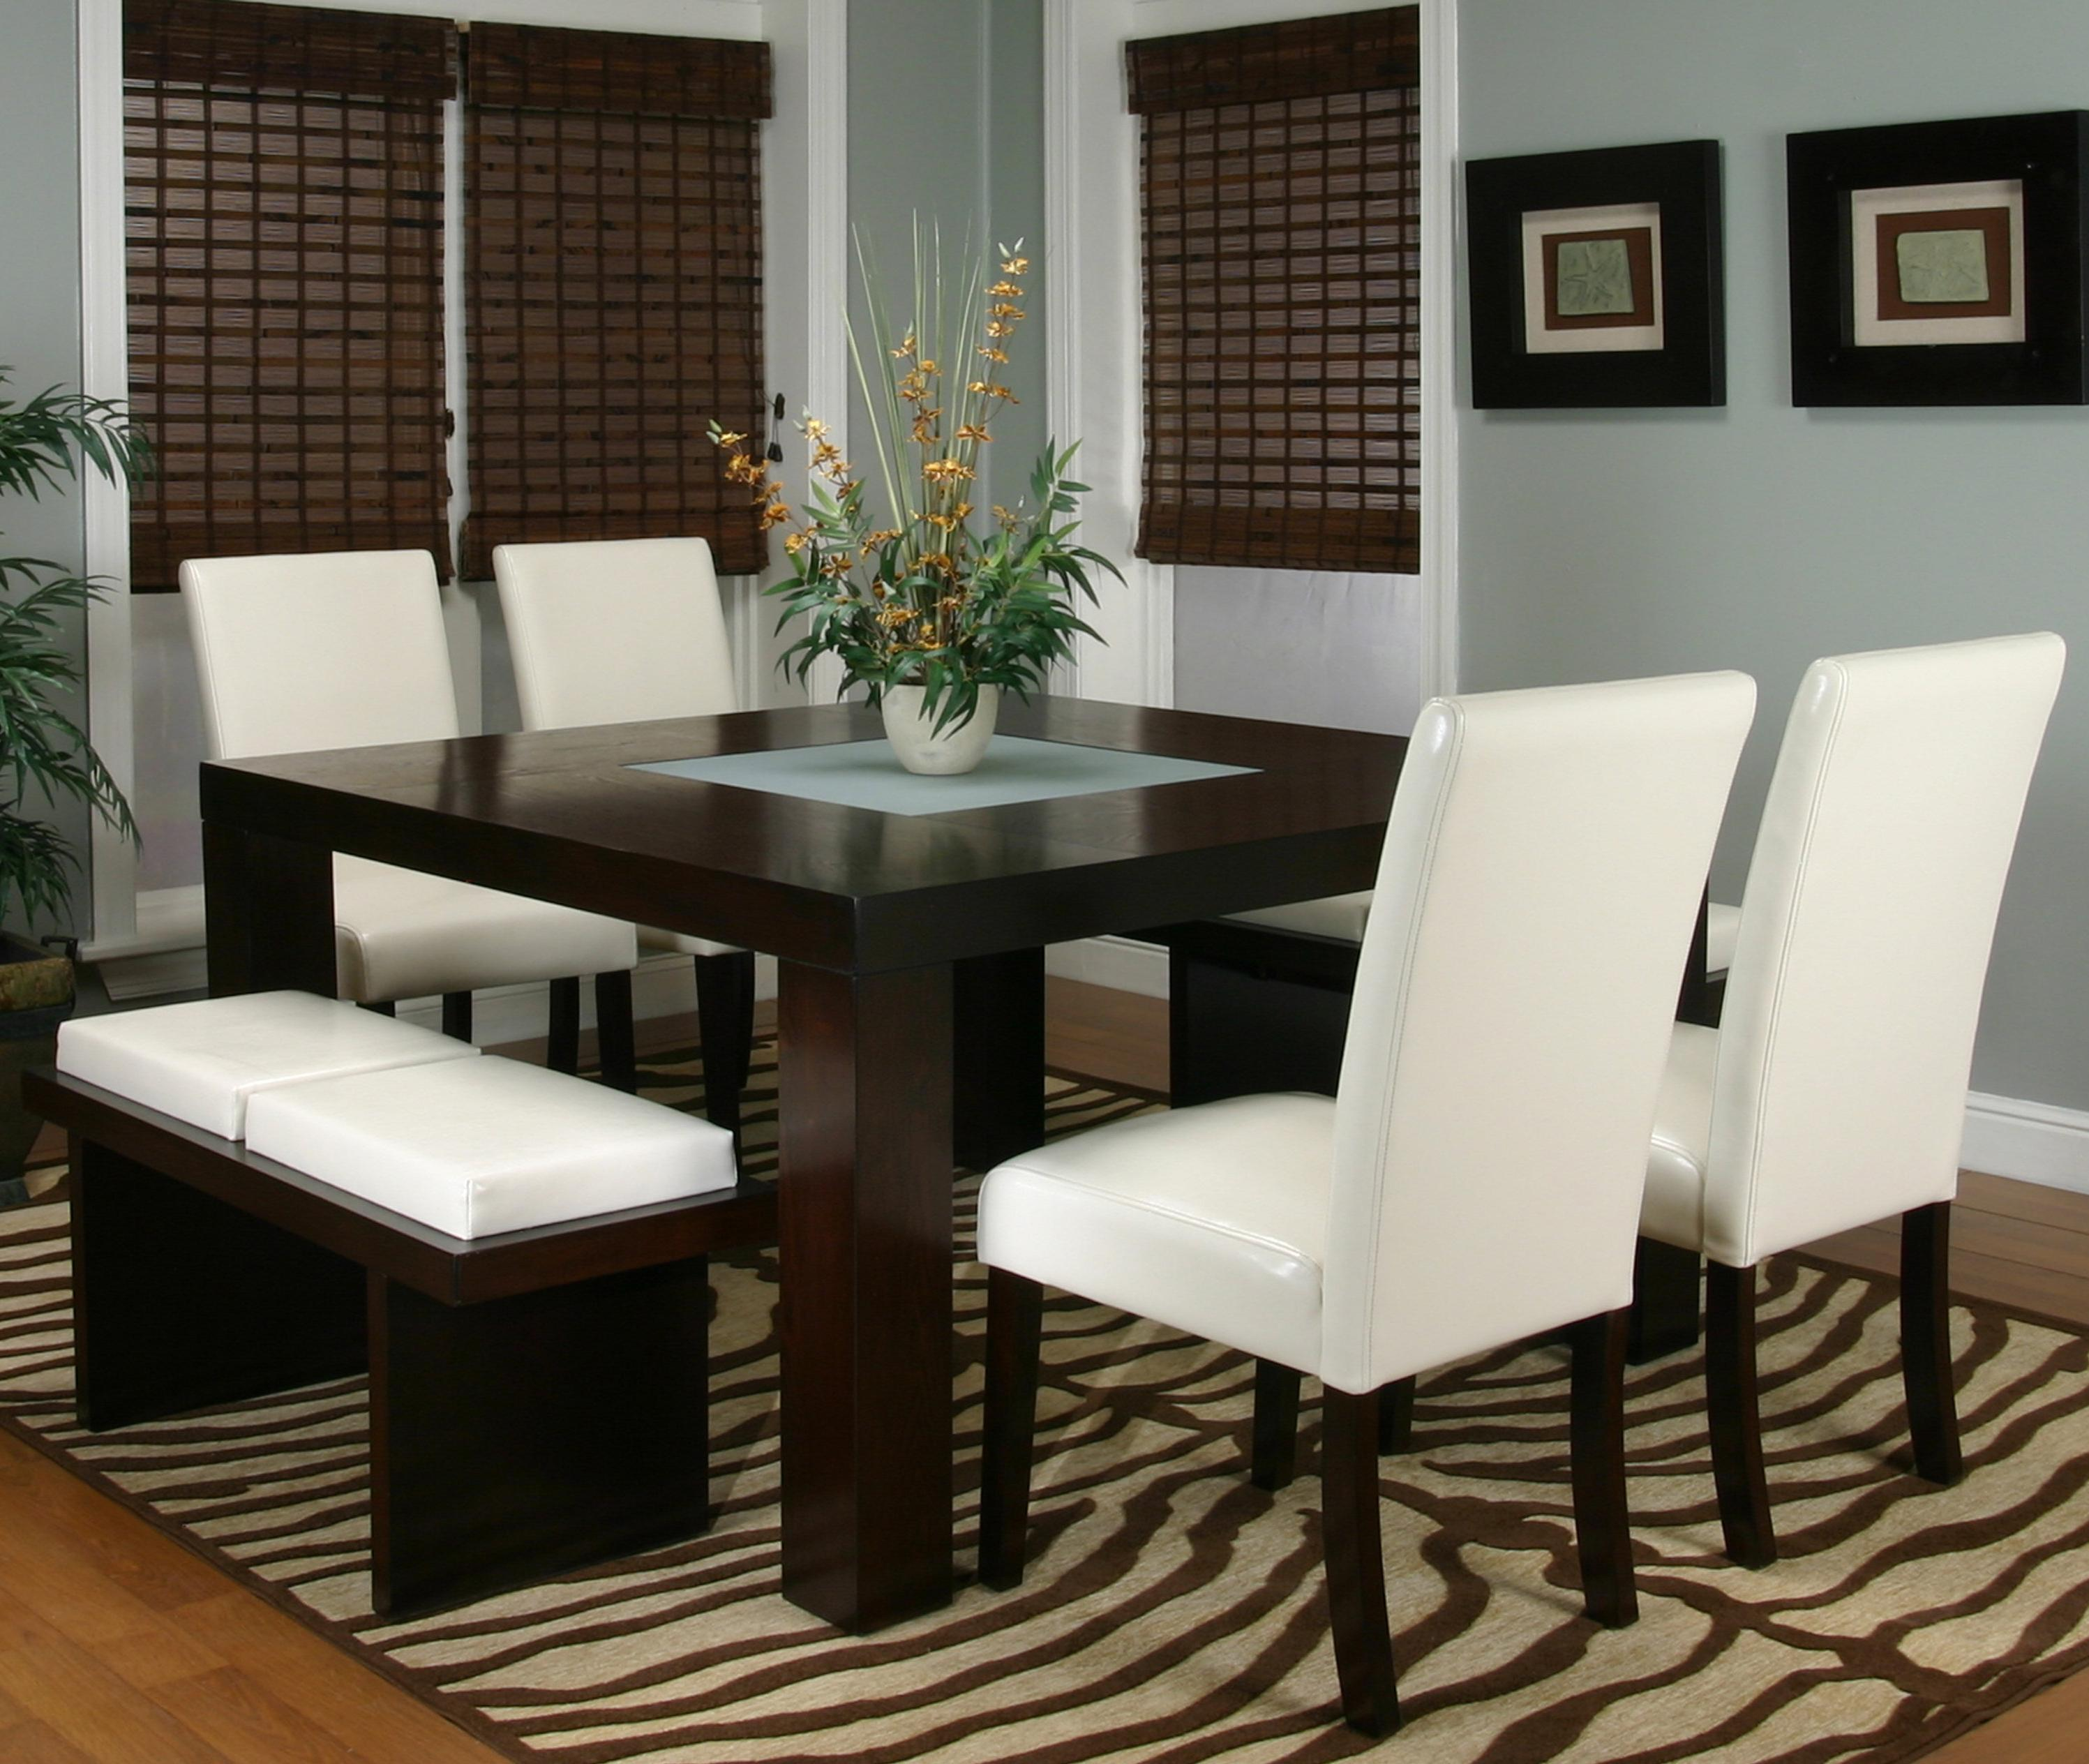 Dining Room Sets With Benches: Cramco, Inc Contemporary Design